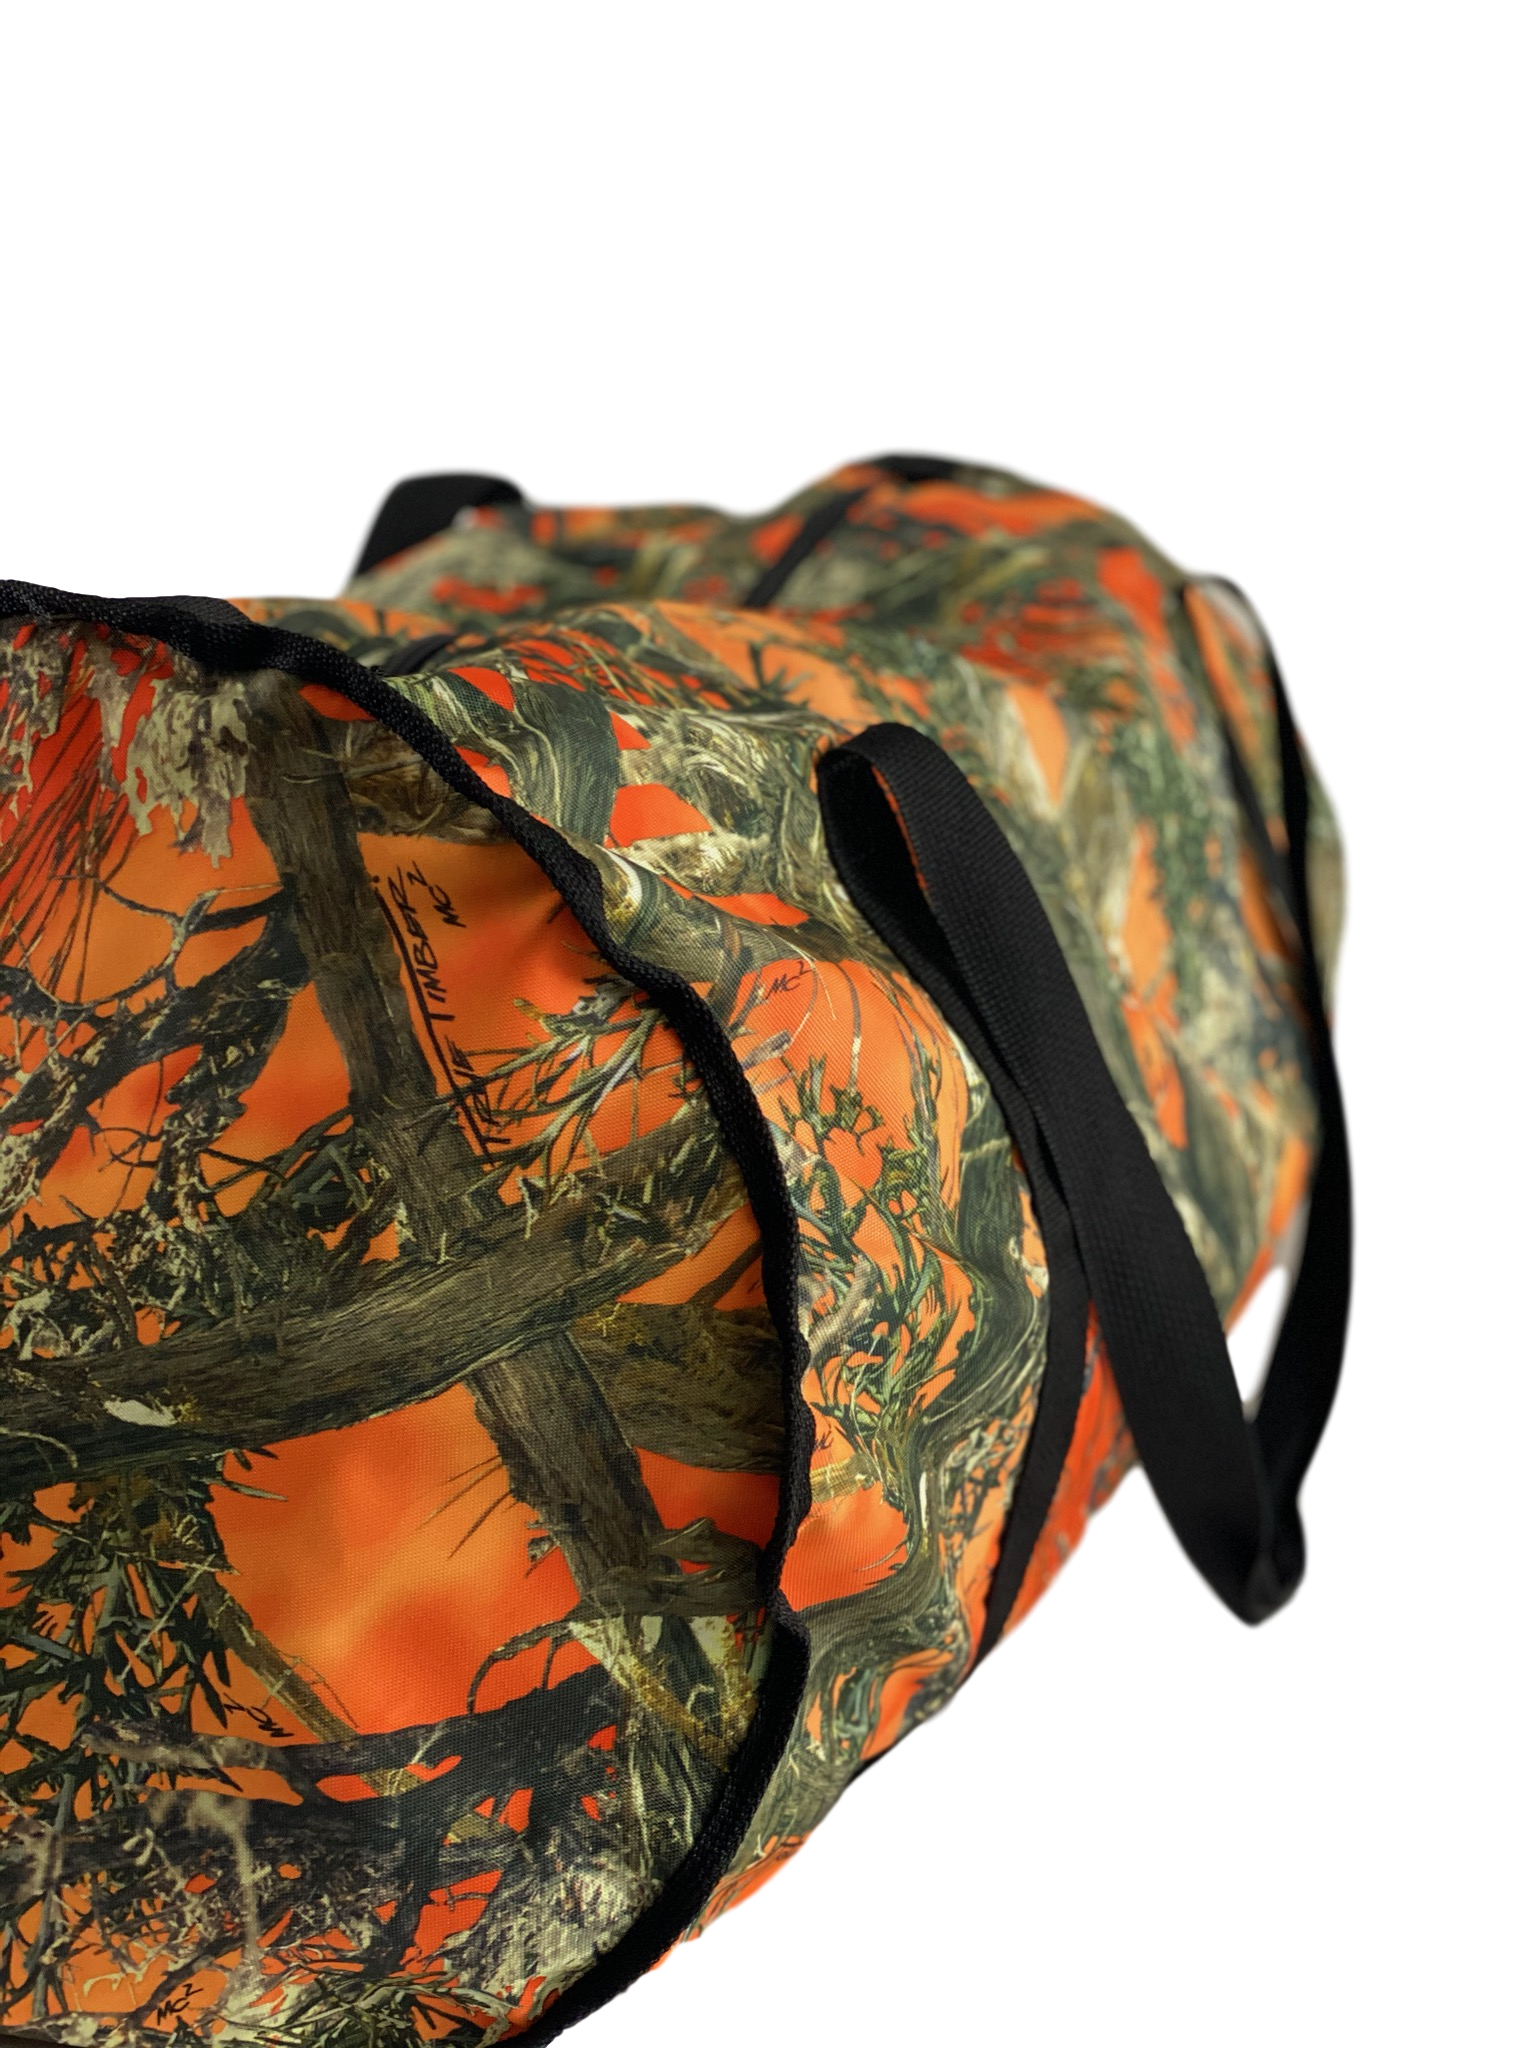 camo hunting bag - orange camo hunting bag